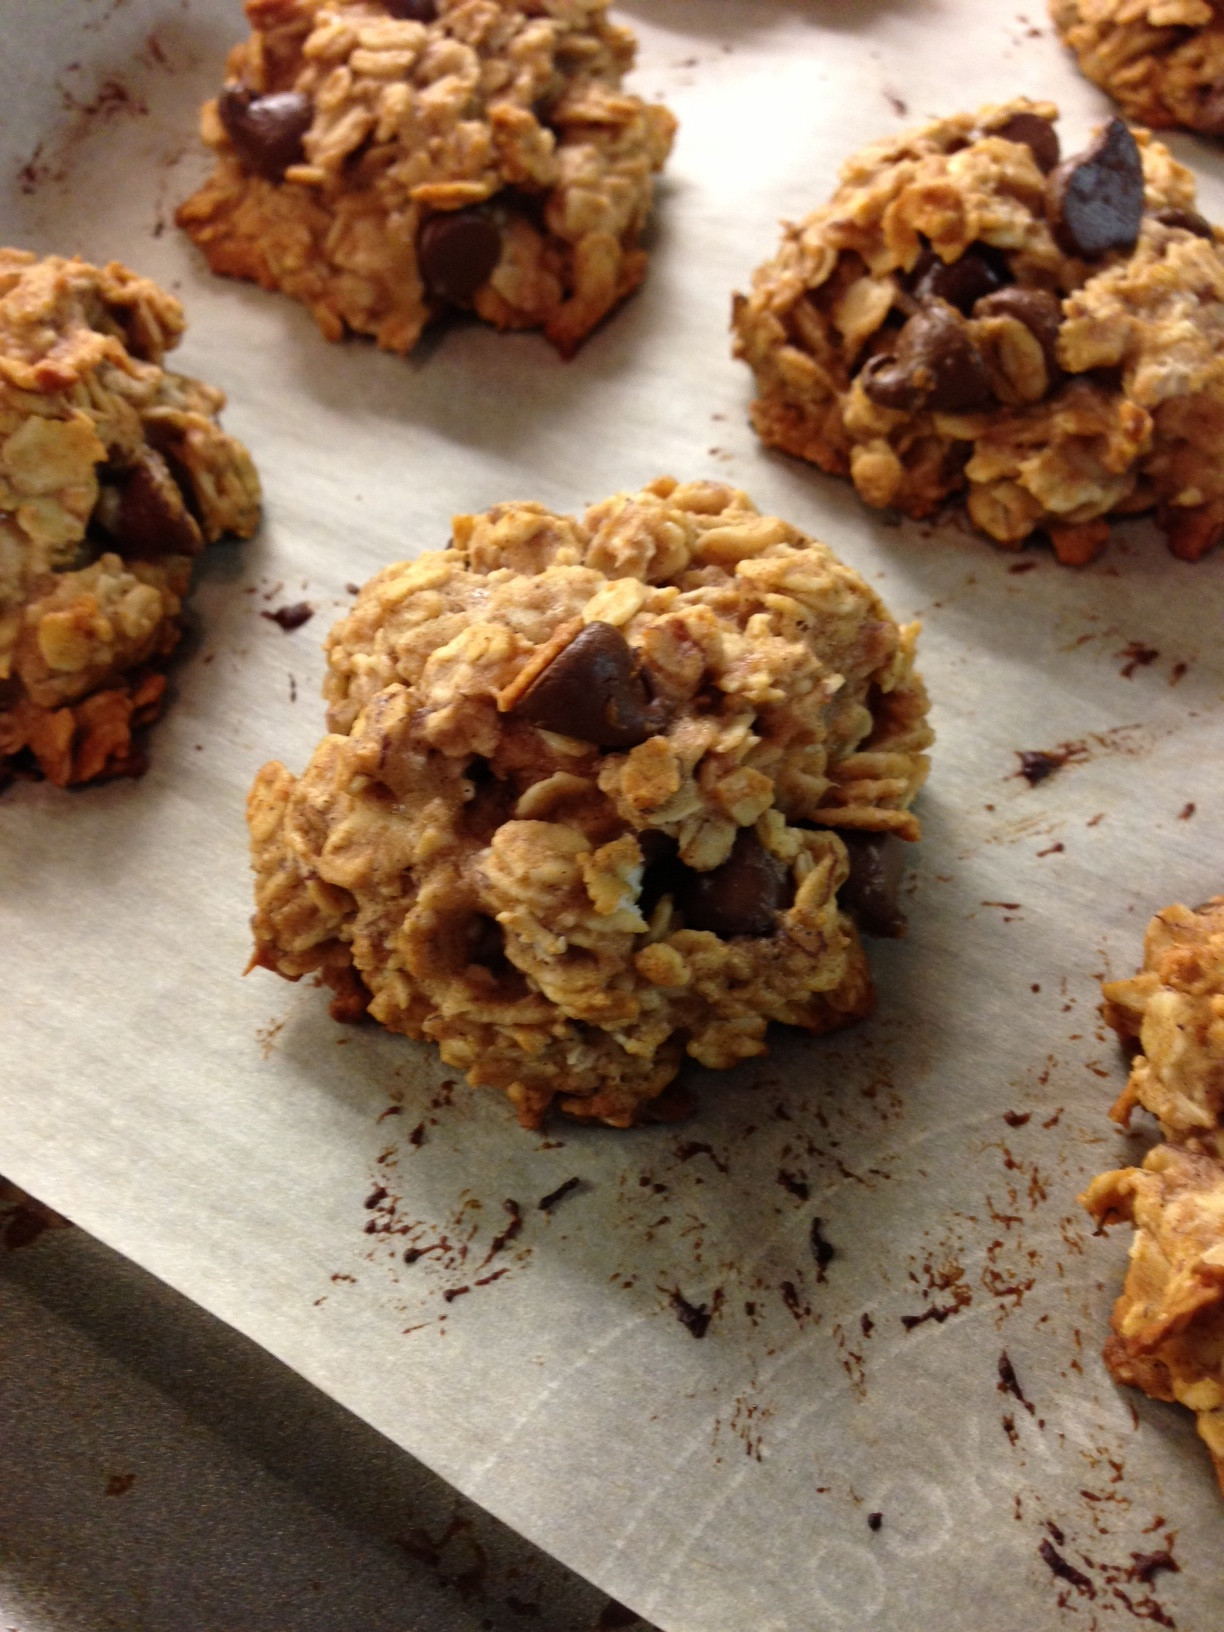 Is Oatmeal Cookies Healthy 20 Of the Best Ideas for Healthy Oatmeal Chocolate Chip Cookies Lauren Follett